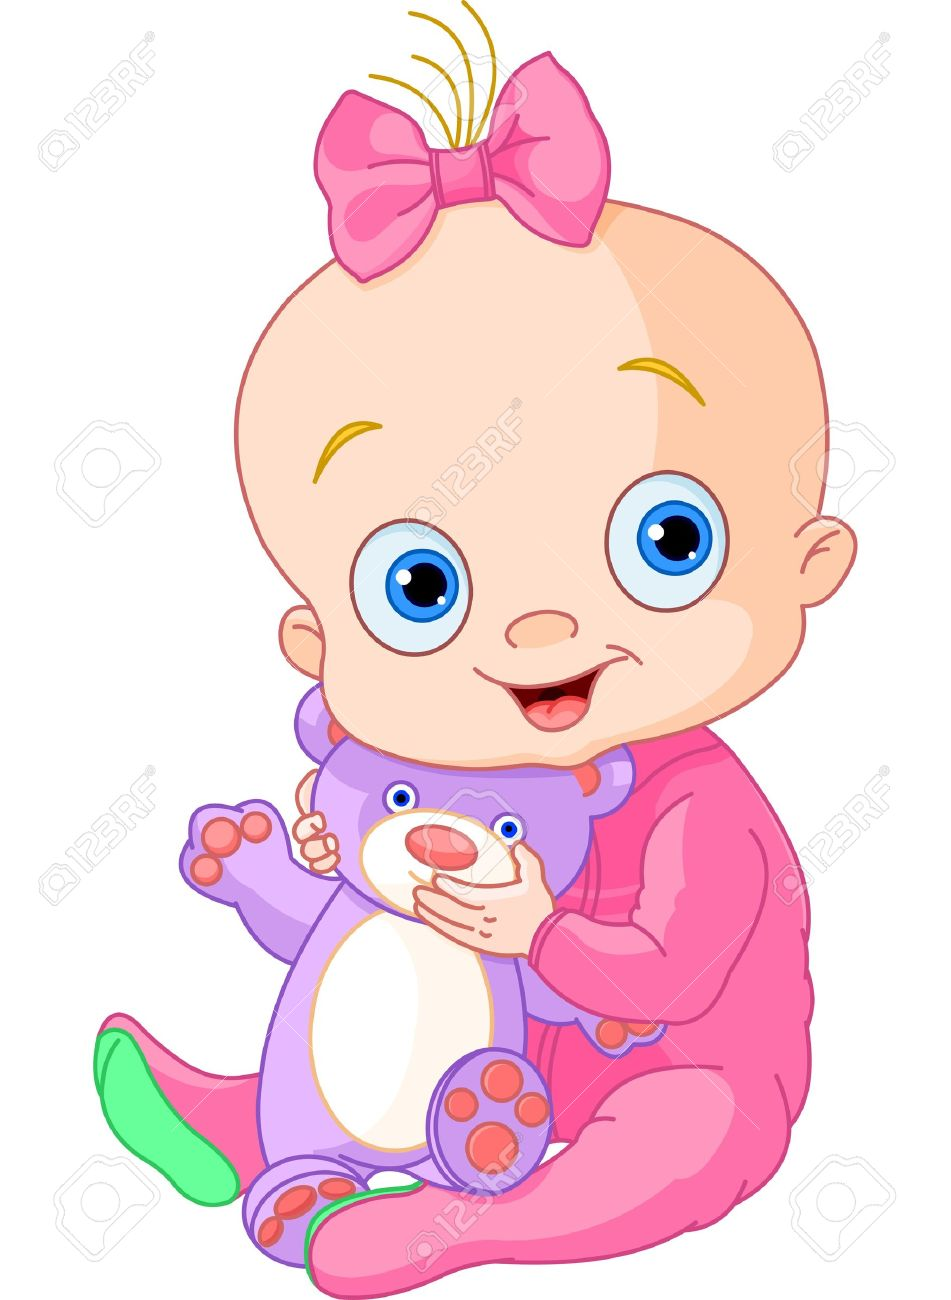 Illustration Of Cute Baby Girl With Teddy Bear Royalty Free Cliparts Vectors And Stock Illustration Image 13708514